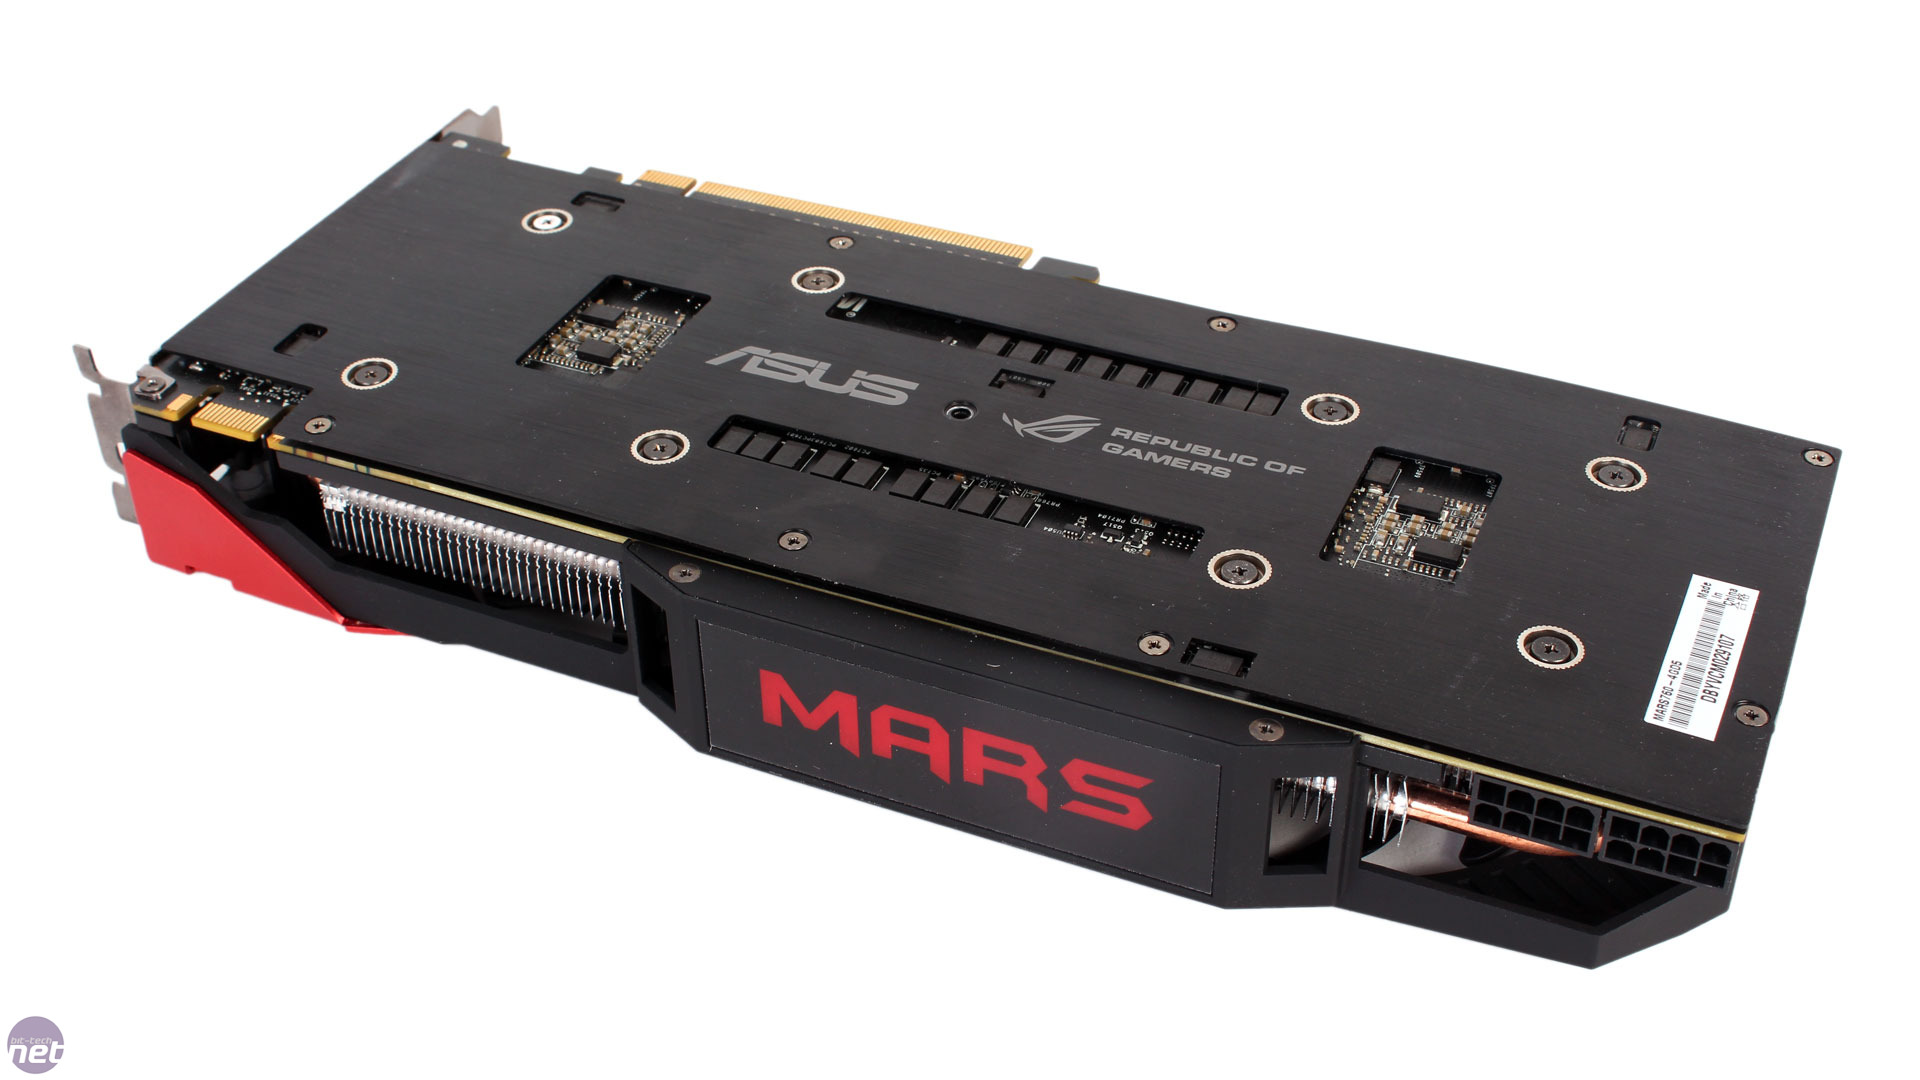 Asus Geforce Gtx 760 Mars Review Bit Tech Net